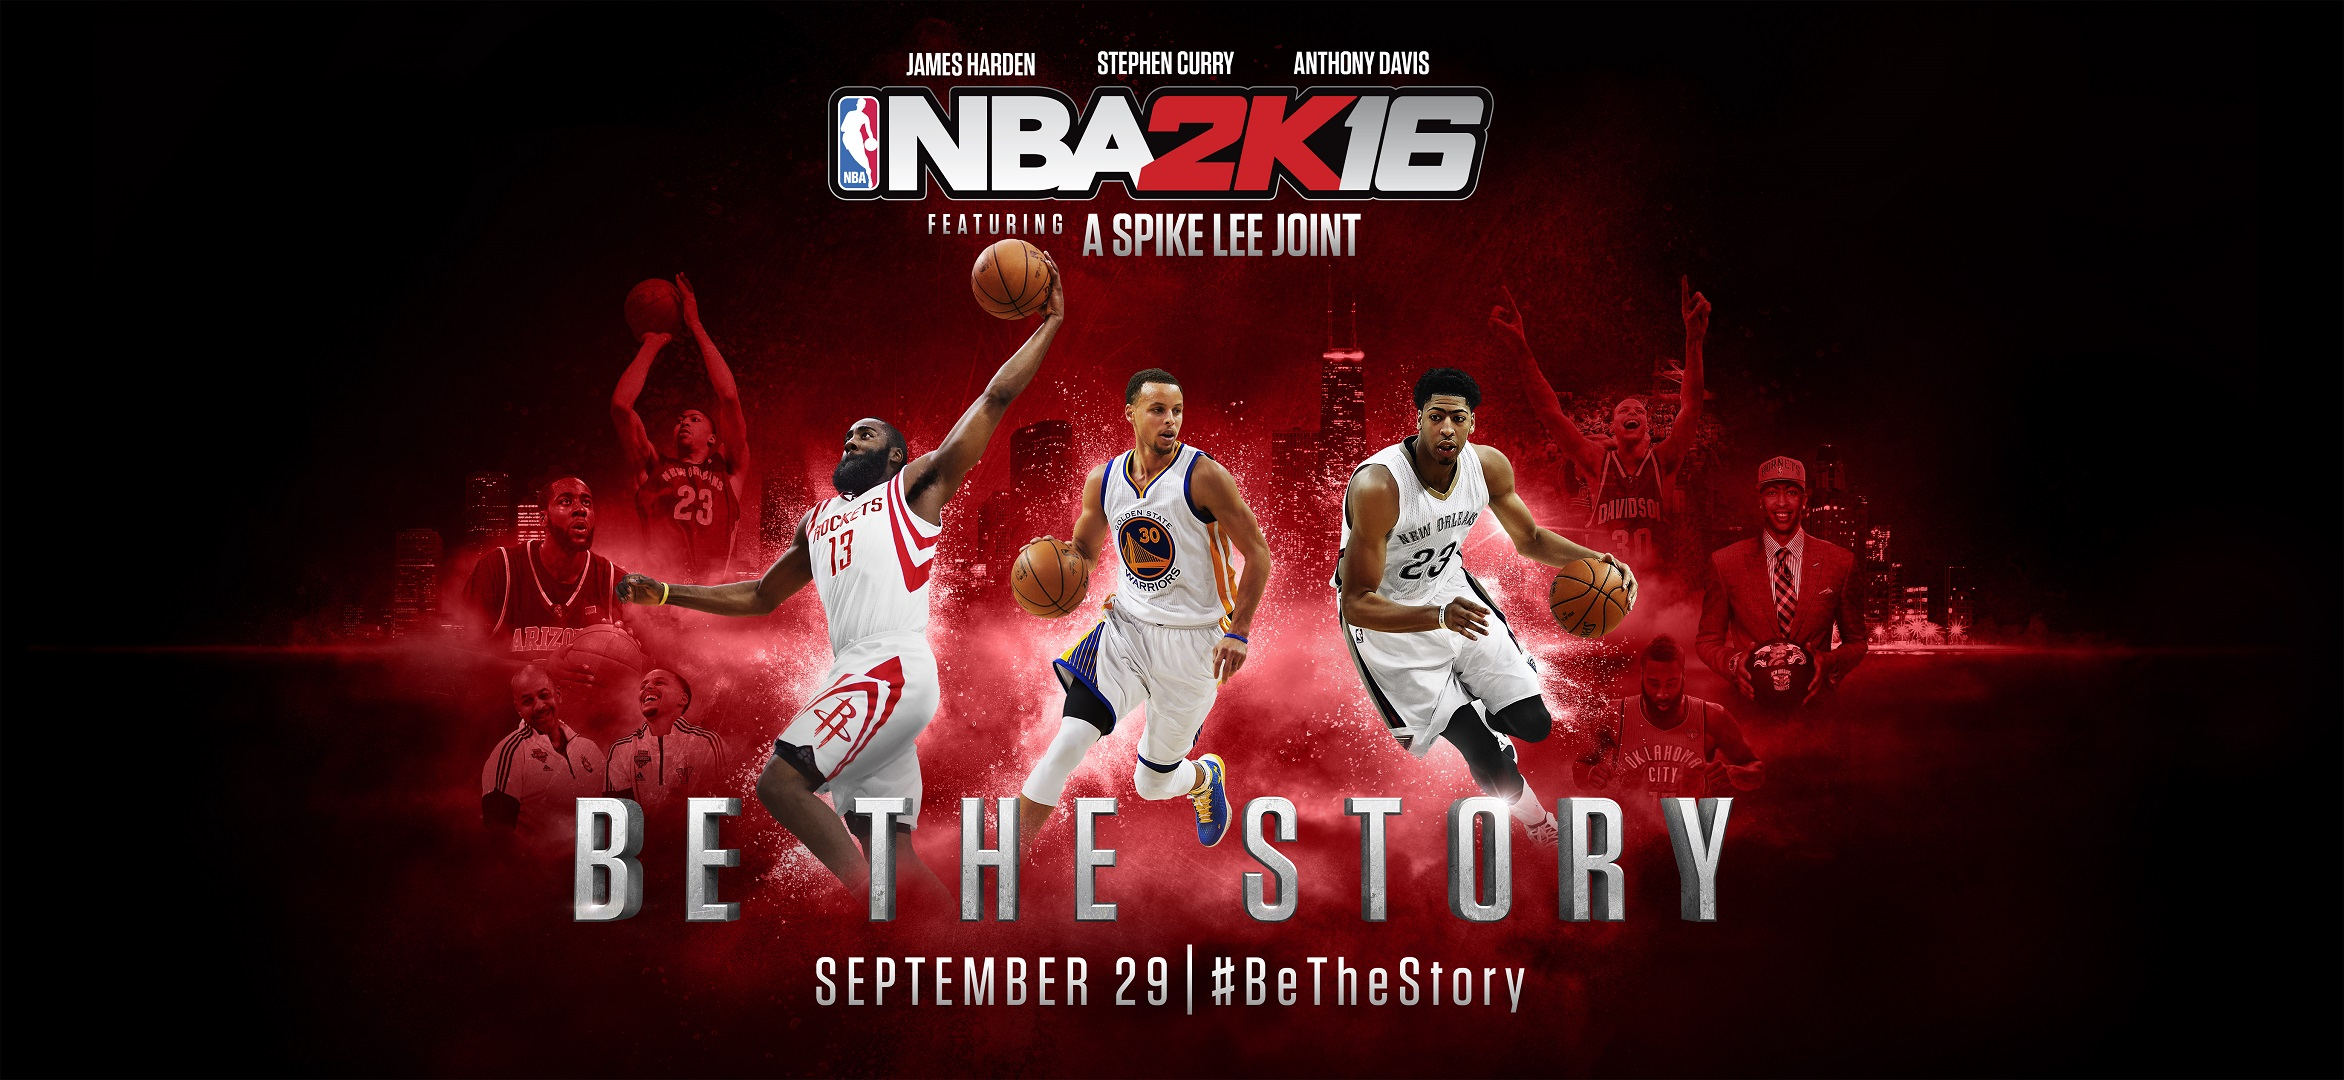 NBA2K16_3_Player_Horizontal_KeyArt-sm